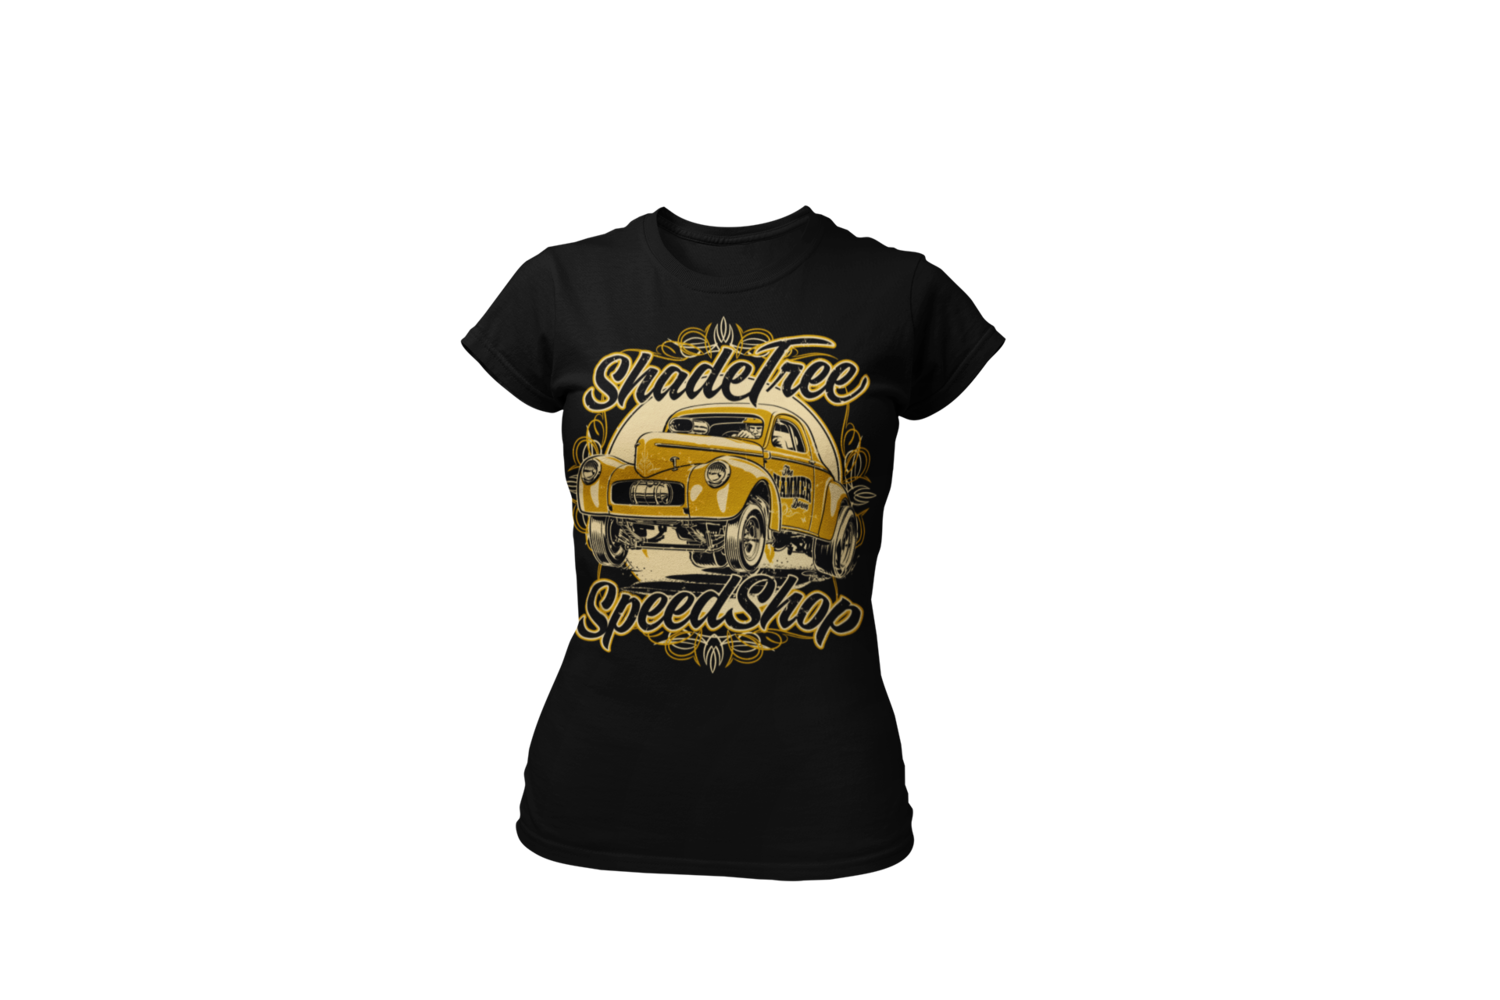 """SHADE TREE SPEED SHOP """"Willys"""" T-SHIRT WOMAN by Ger """"Dutch Courage"""" Peters artwork"""